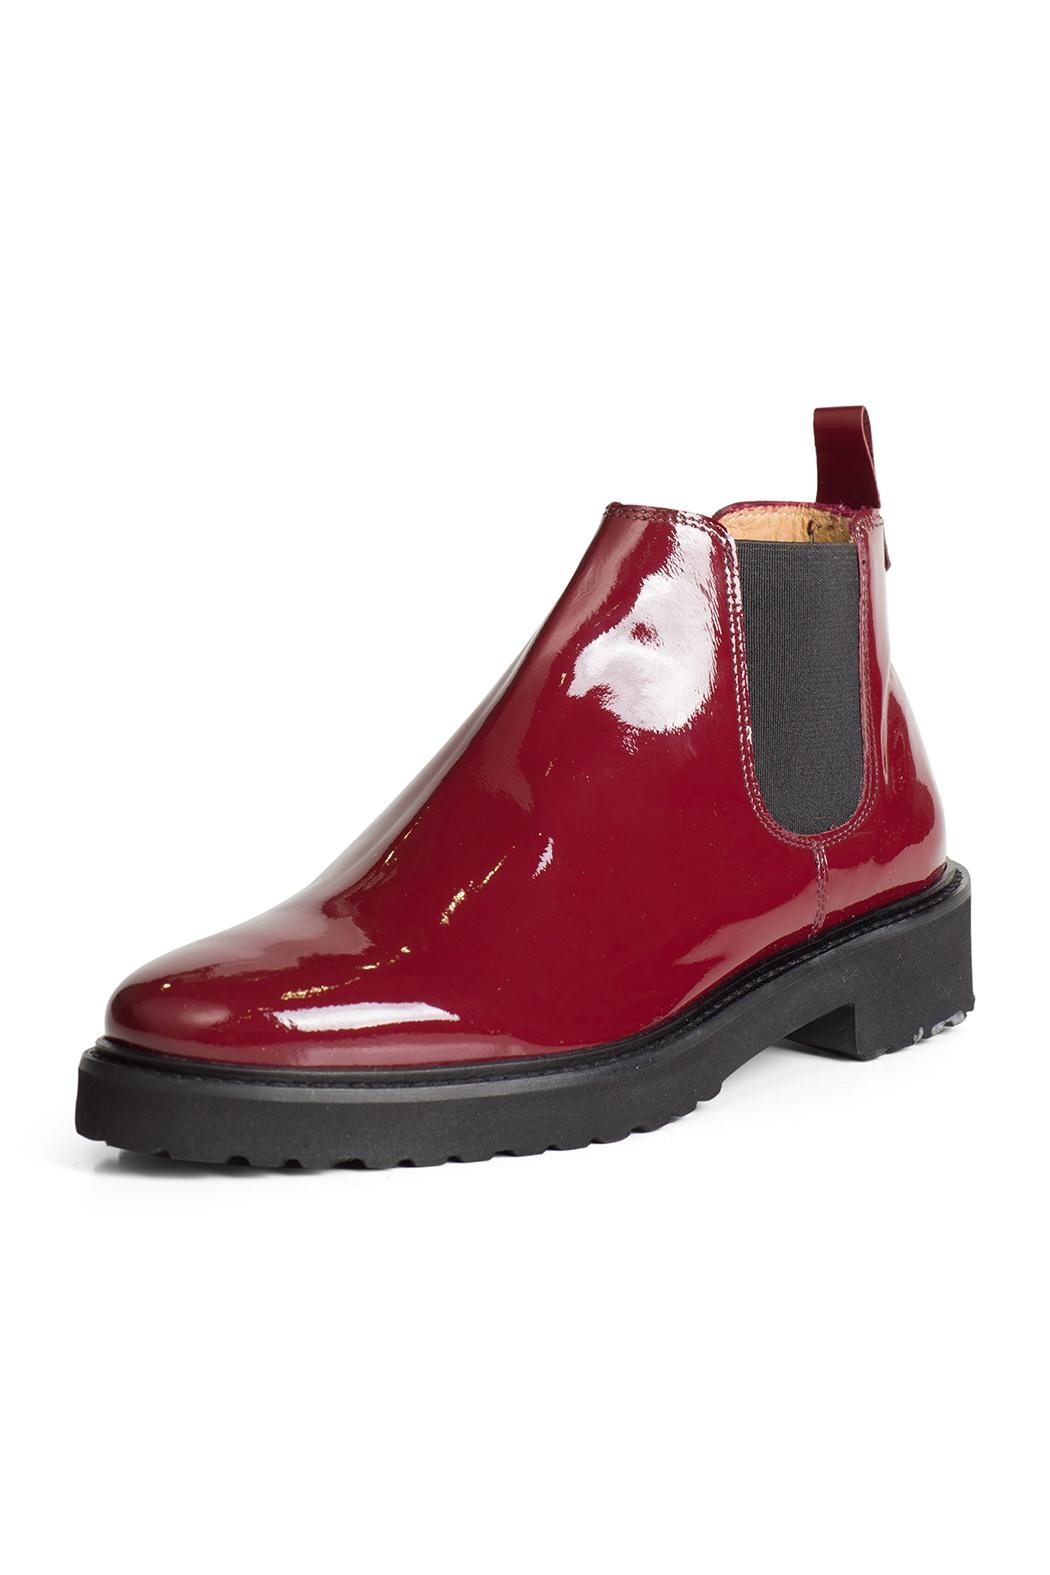 Pascucci Patent Burgundy Ankle-Boot - Main Image